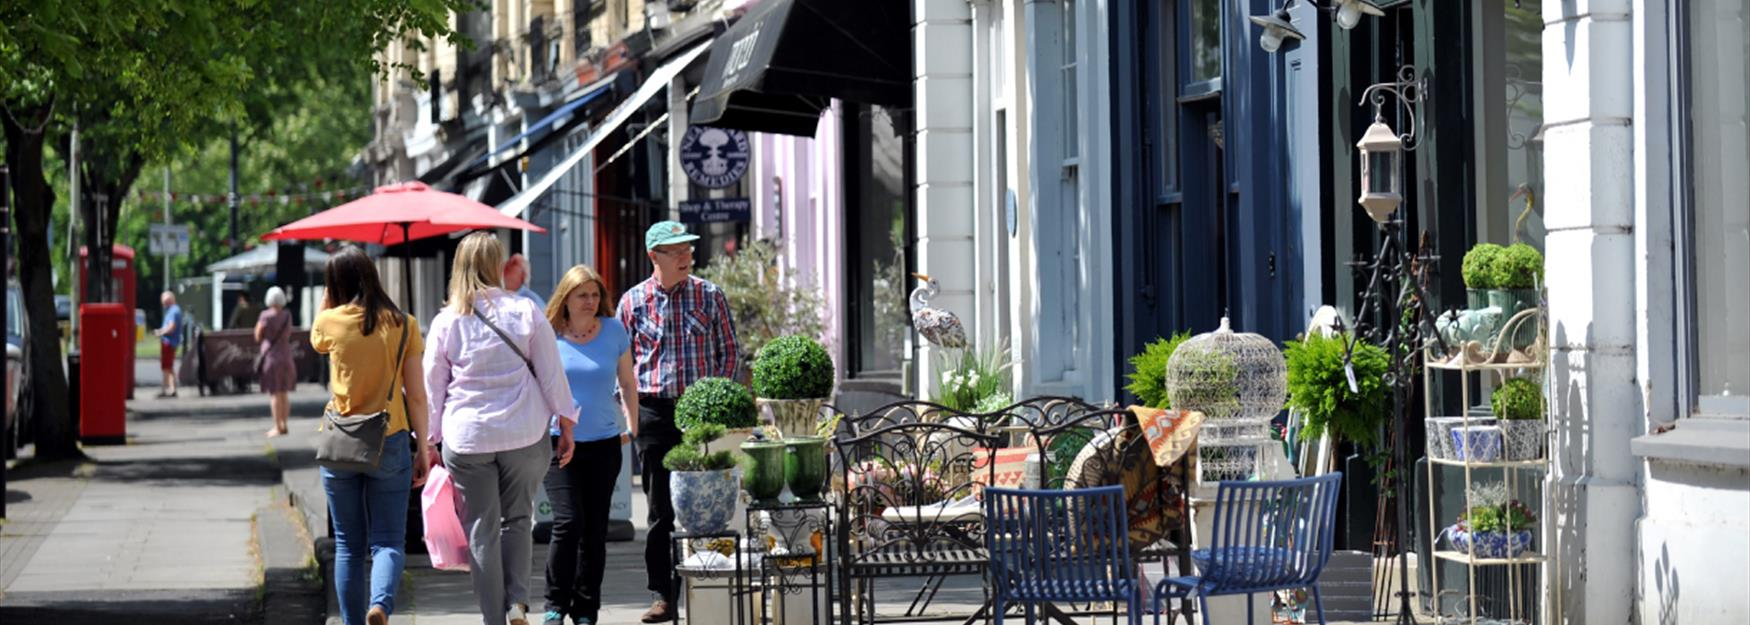 People browsing some of Cheltenham's many independent and boutique shops